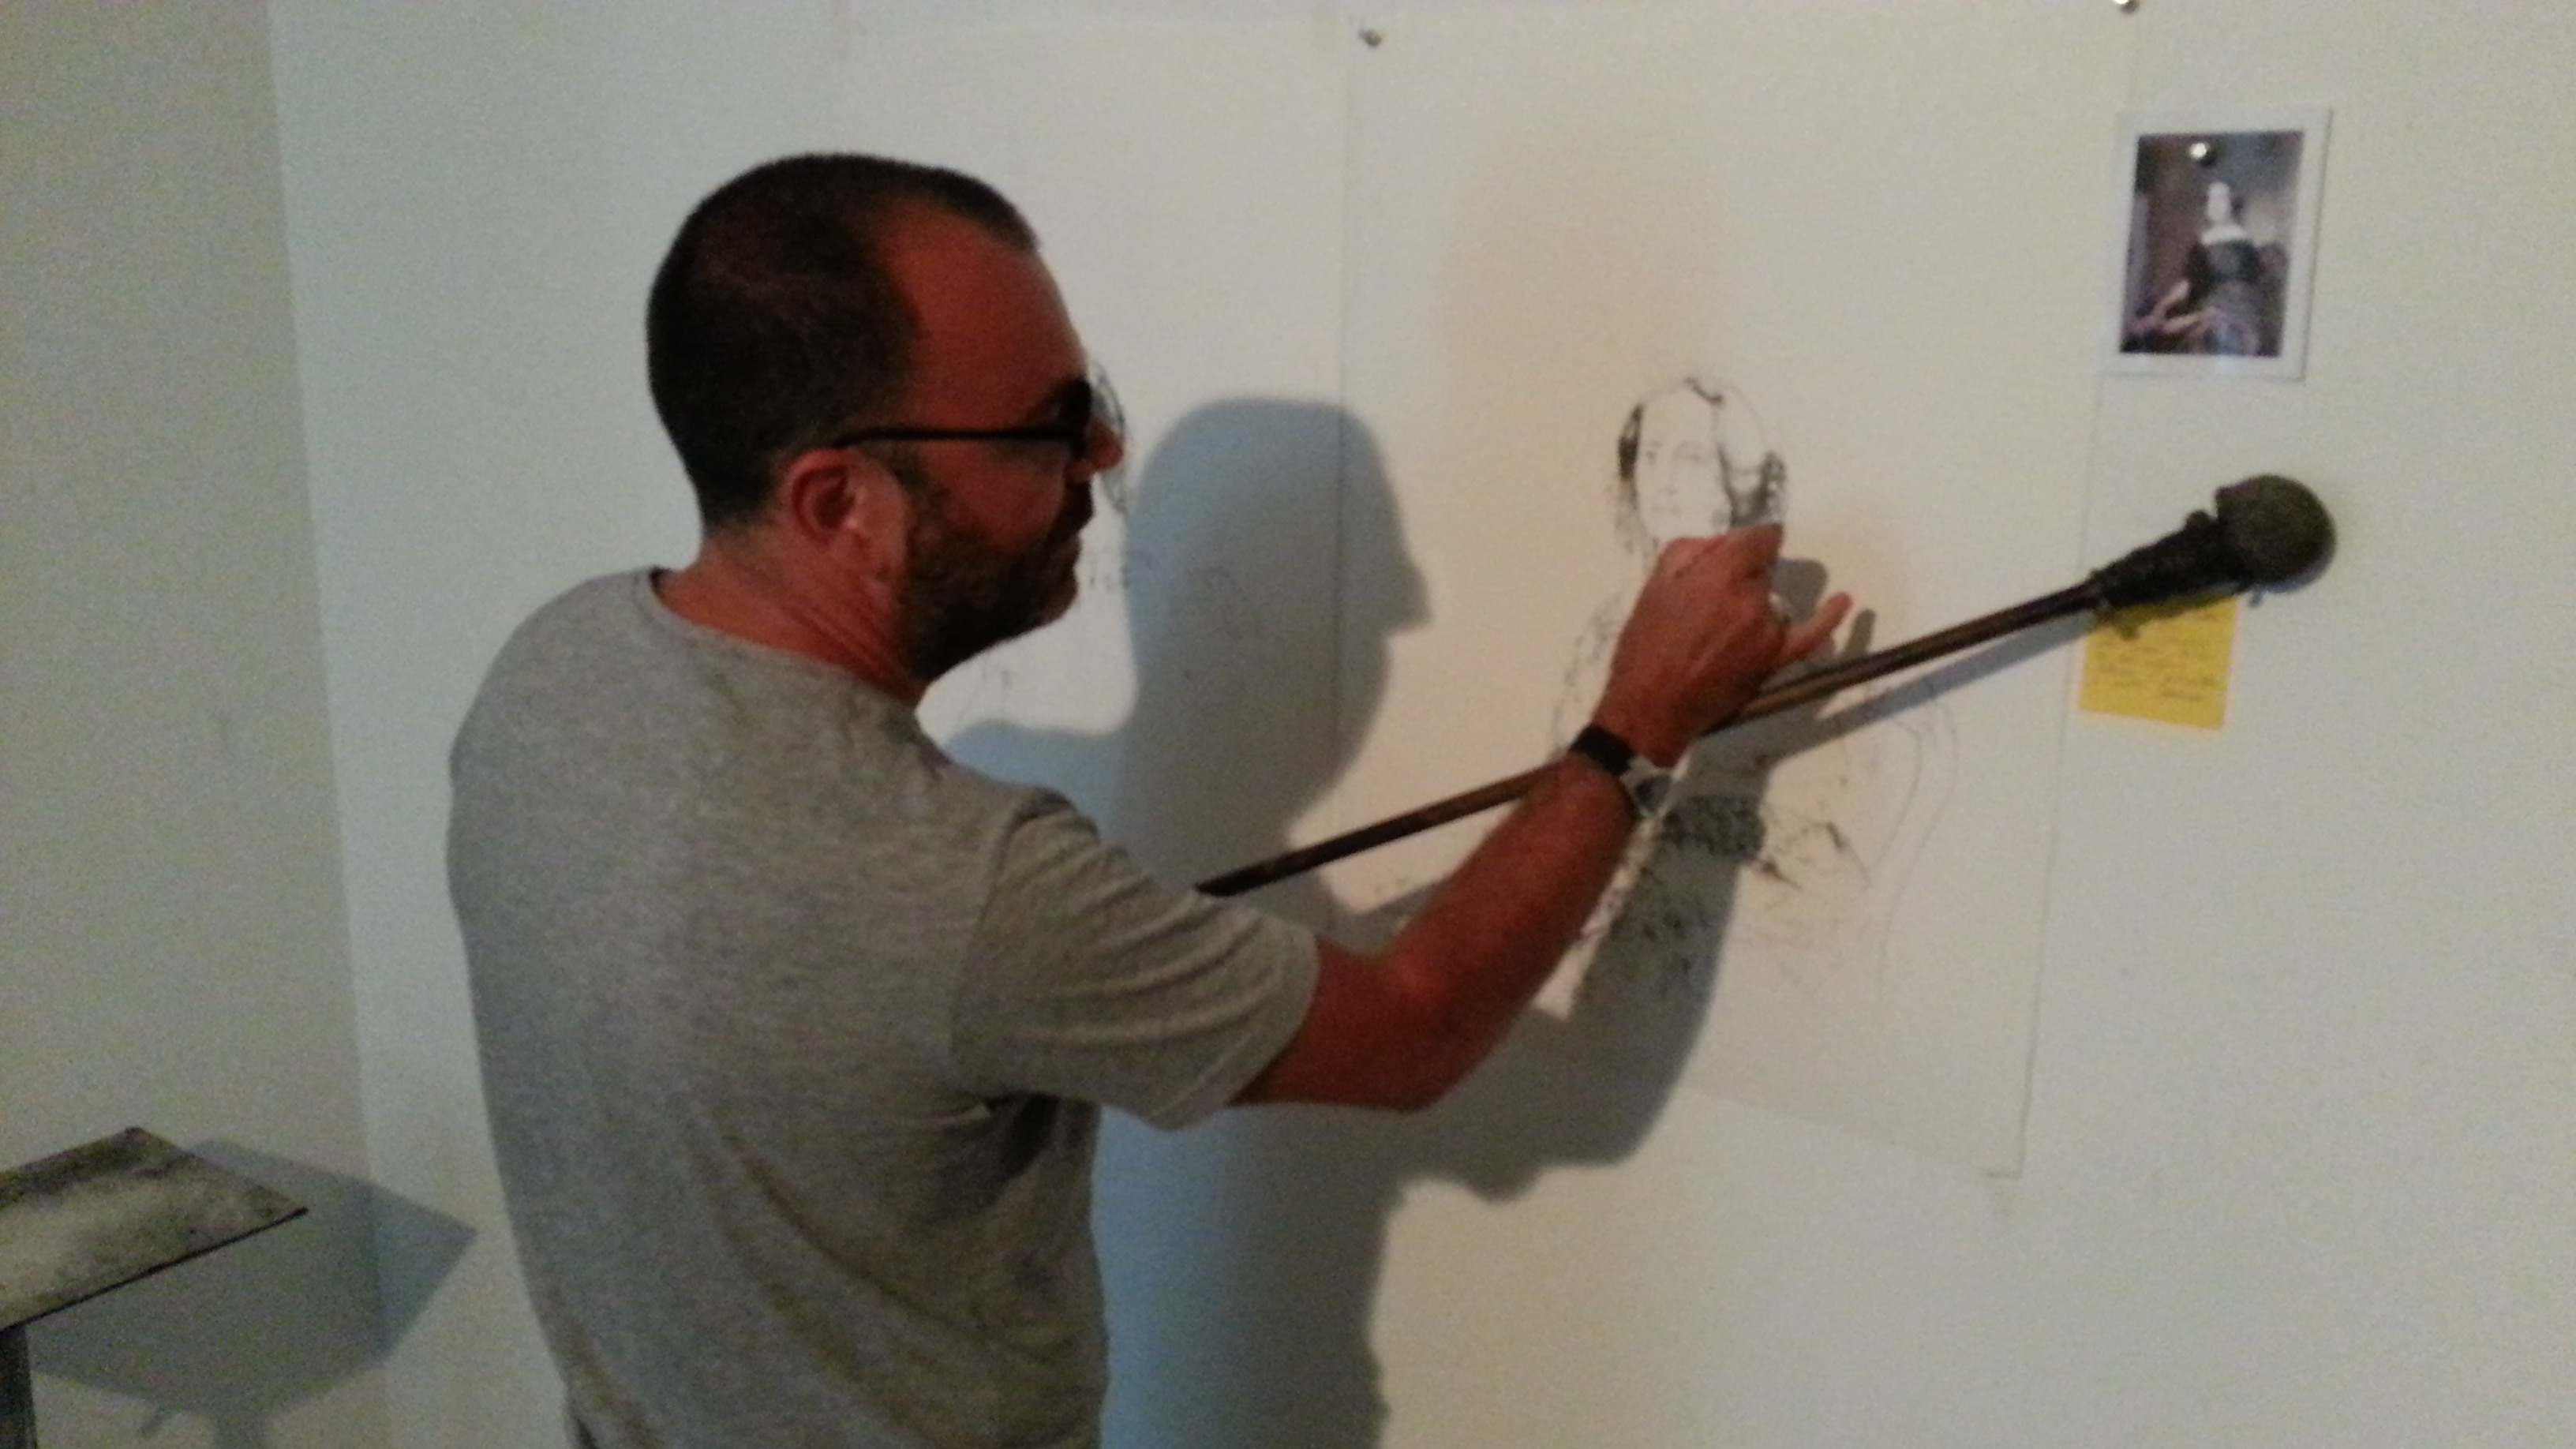 Roig creates a drawing using a hand-made implement to steady his hand during the elaborate sketching.